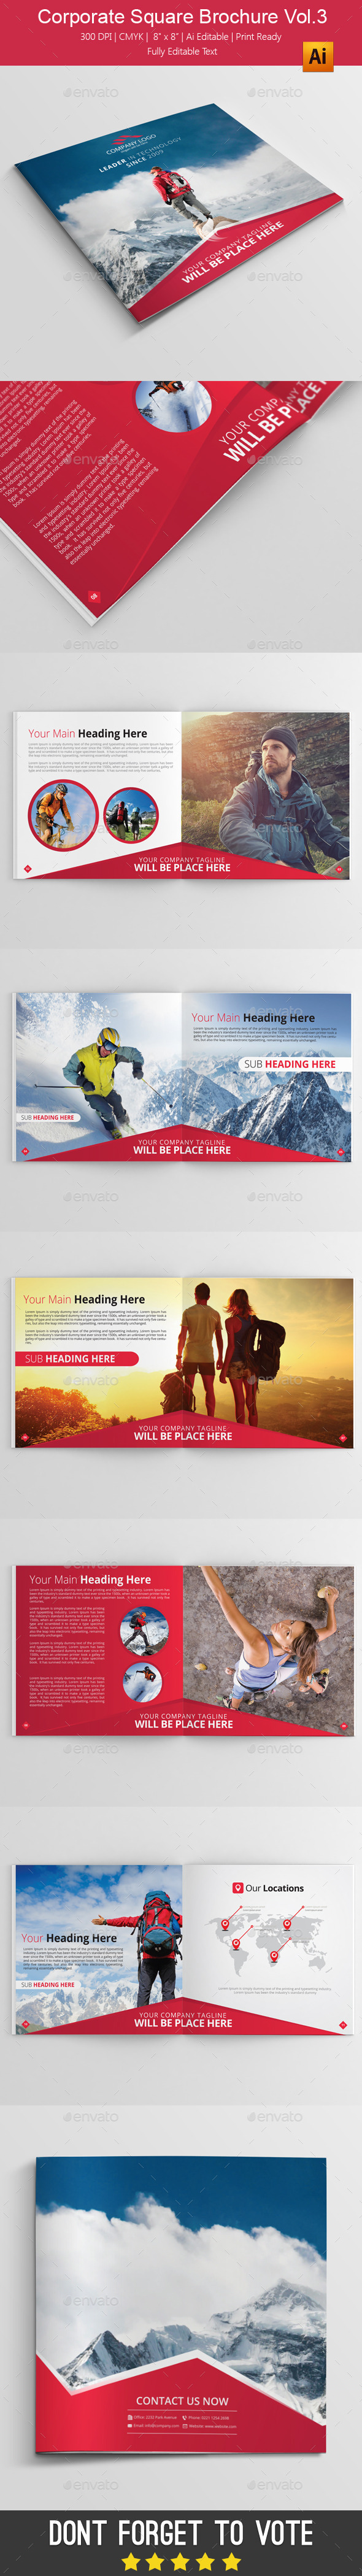 Corporate Square Brochure vol.3 - Brochures Print Templates